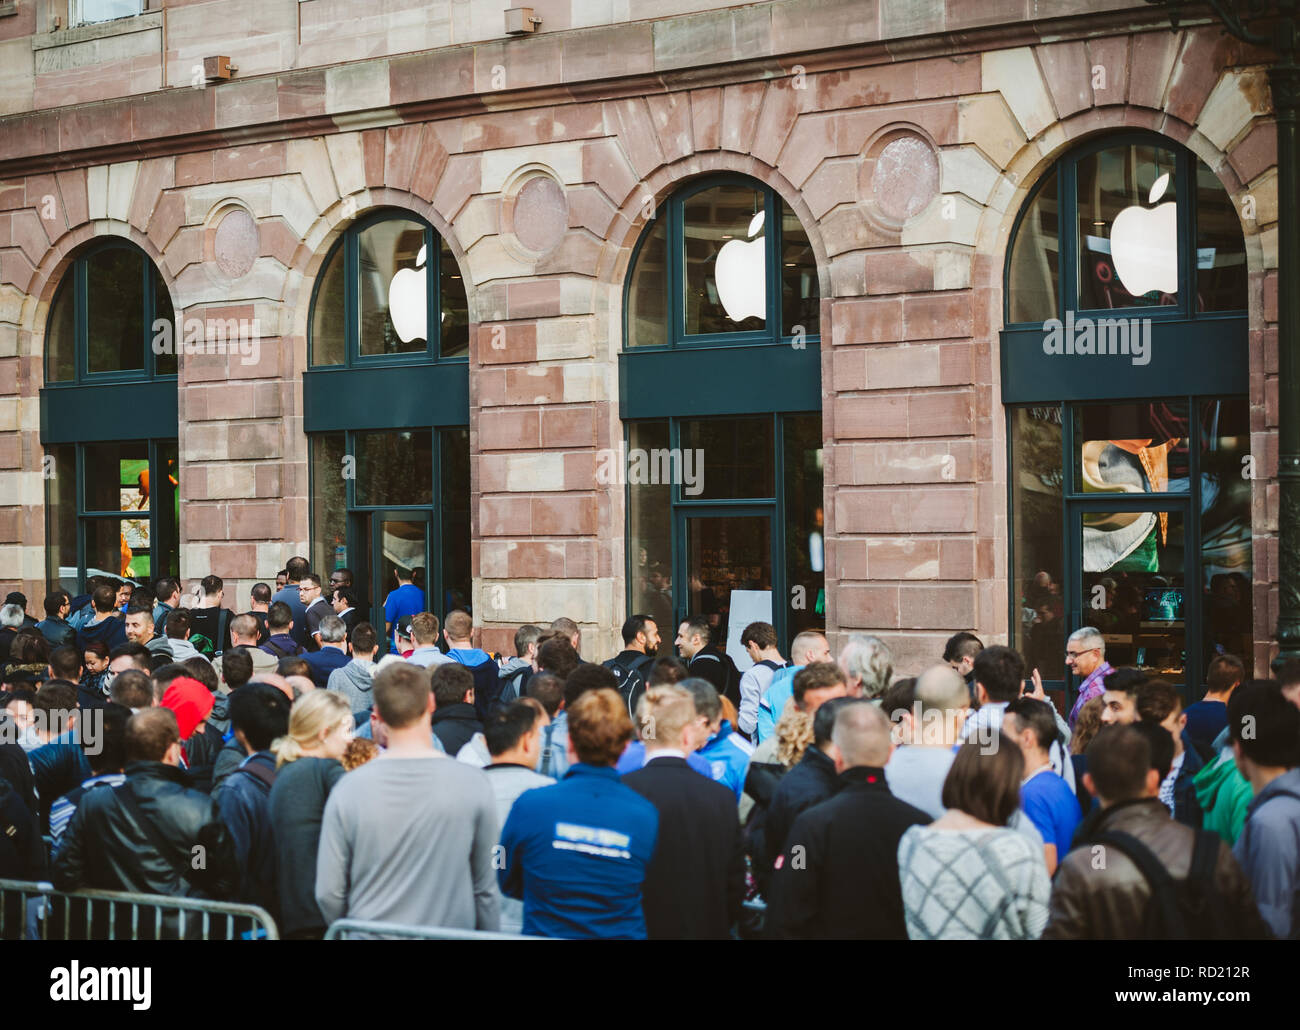 STRASBOURG, FRANCE - SEP, 19 2014: Adult and kids in line queue in front of Apple Store with customers waiting in line to buy the latest iPhone iPad Apple Watch and notebook Stock Photo